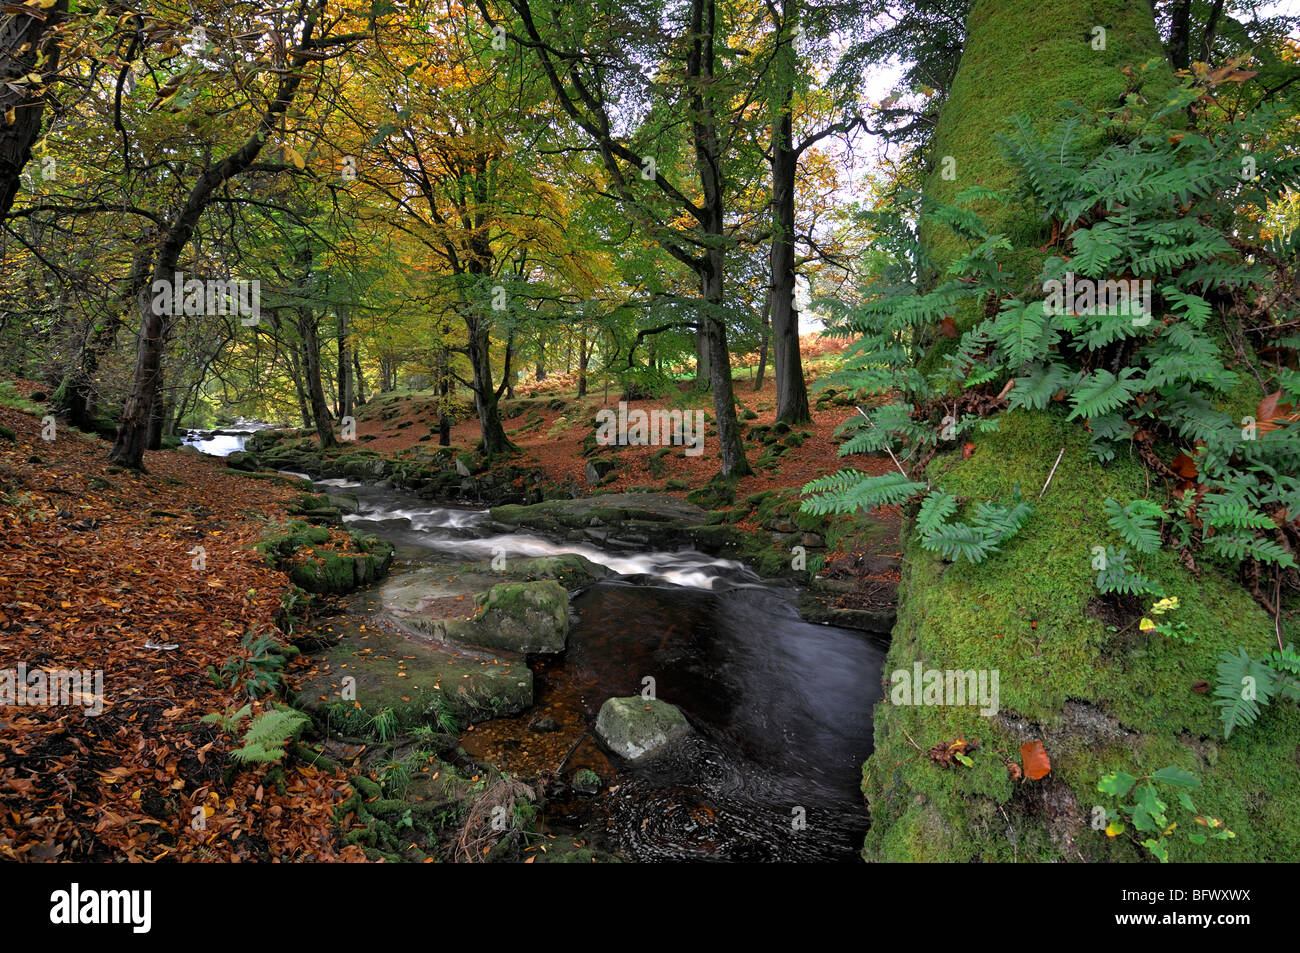 cloghleagh river county wicklow ireland autumn fall color colour